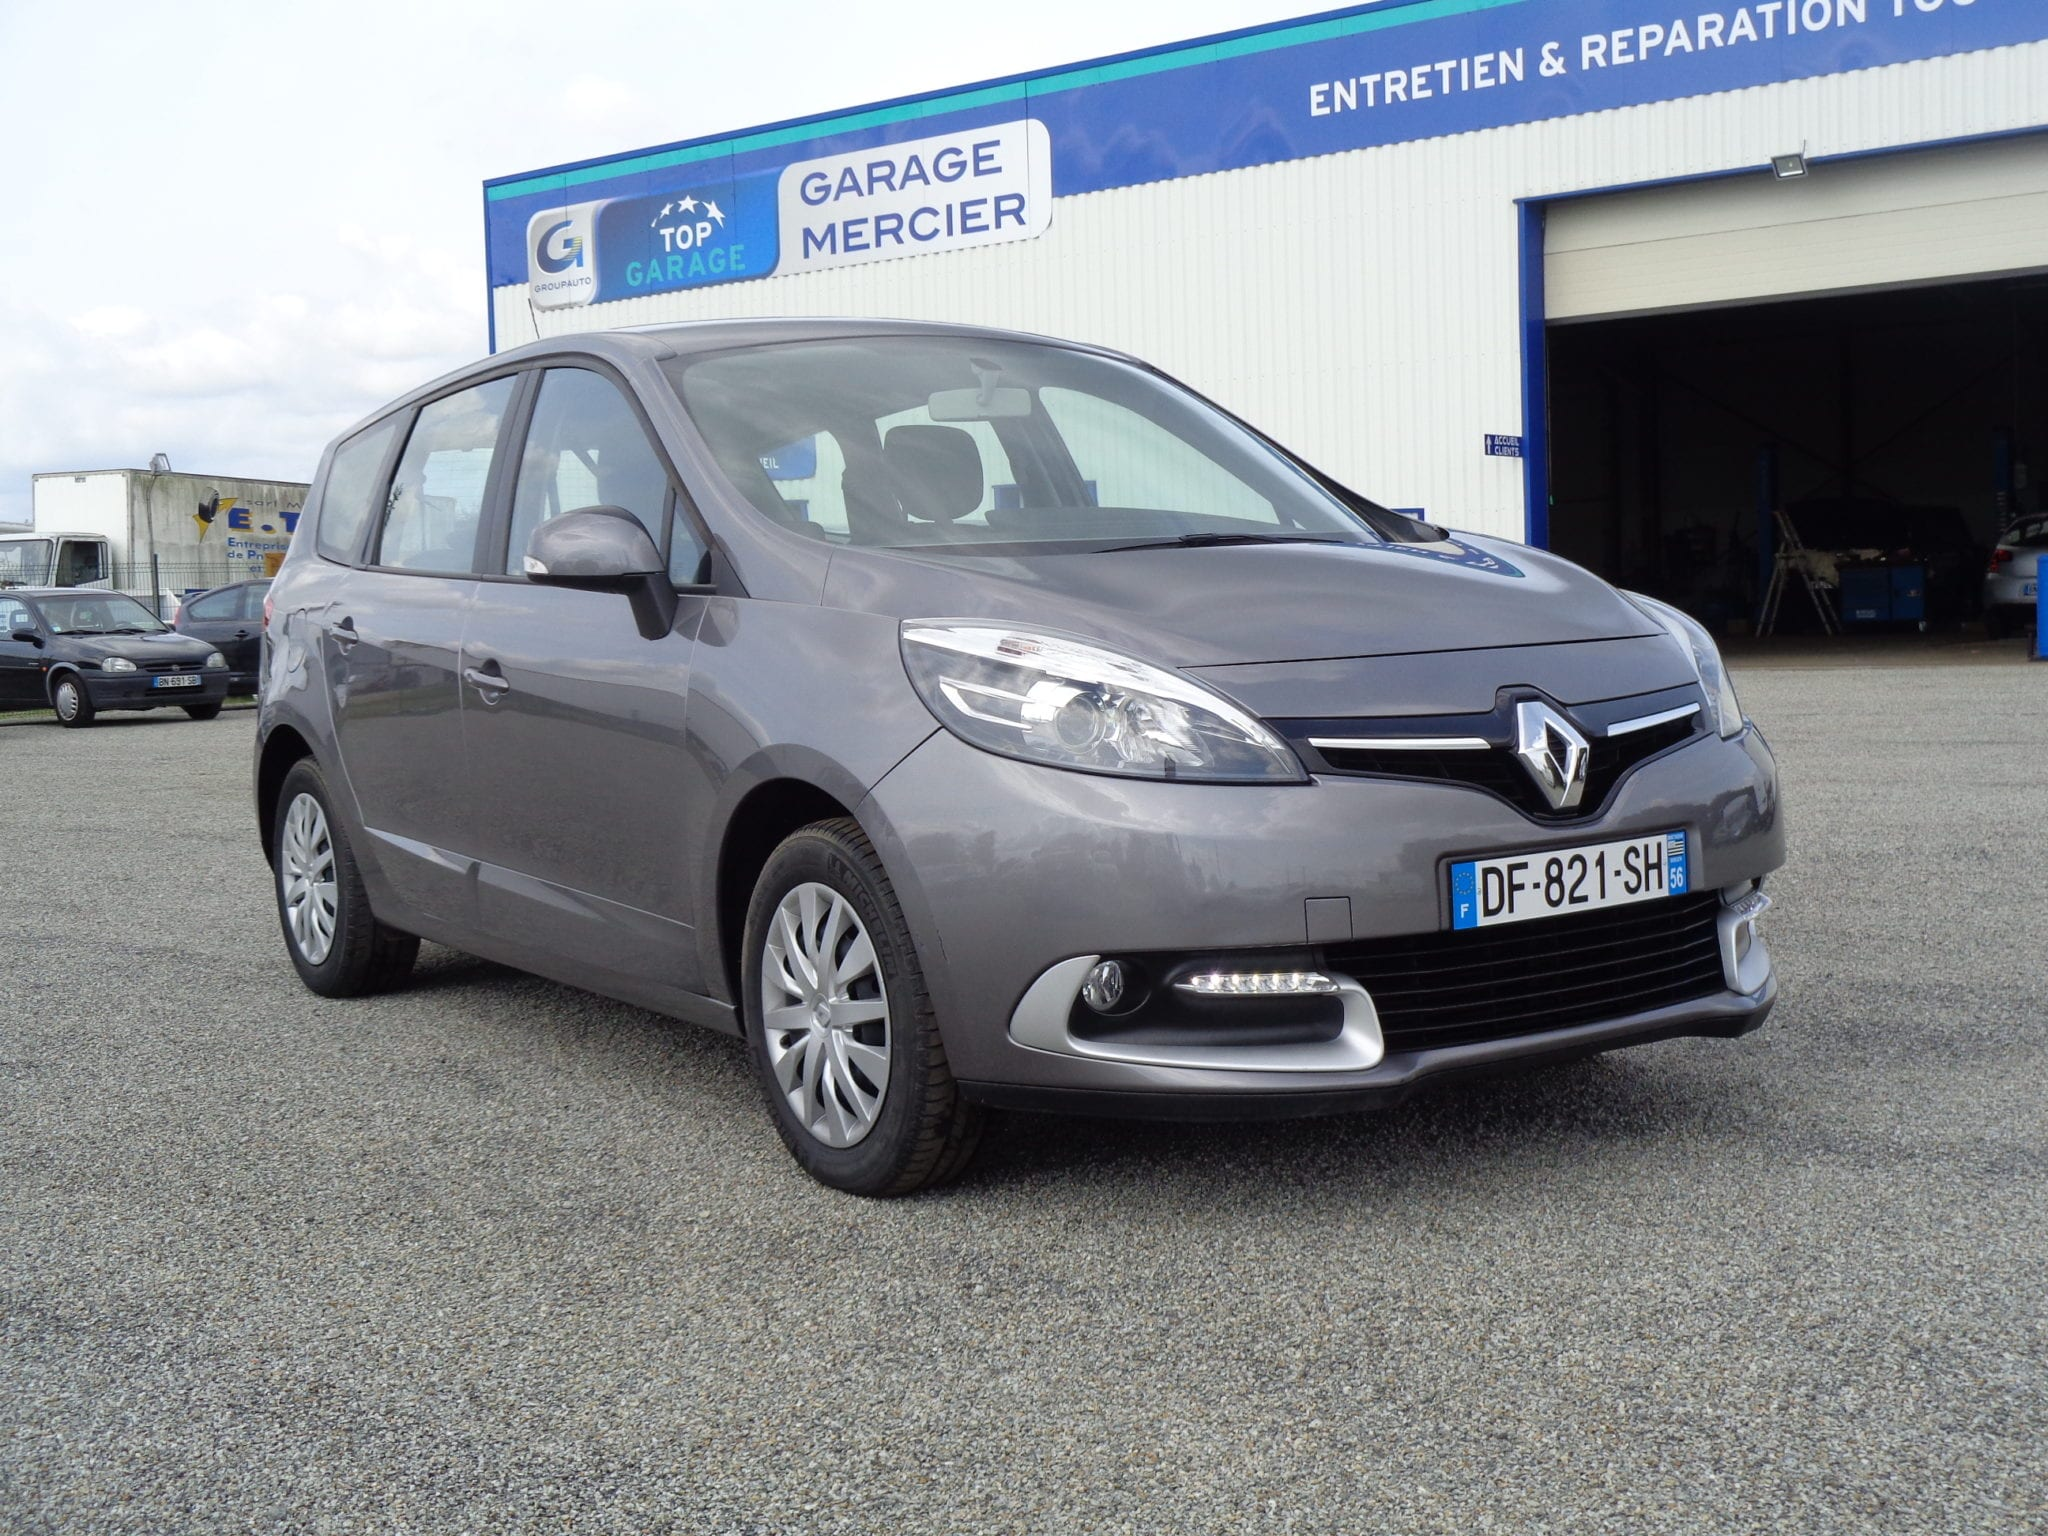 RENAULT GRAND SCENIC DCI 110 ENERGY LIFE ECO2 7 PLACES - Image 1